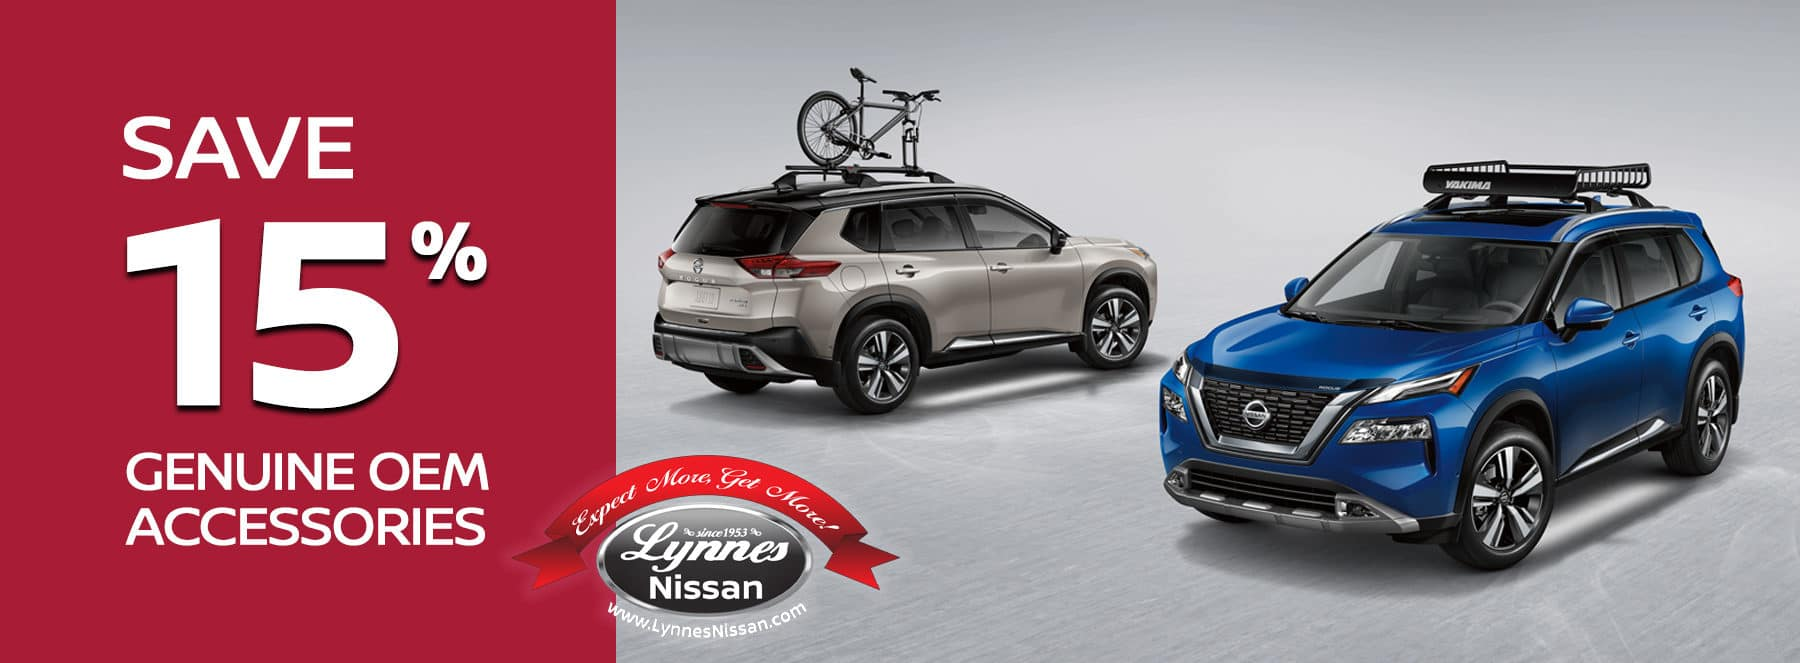 NISSAN JULY ACCESSORIES 15